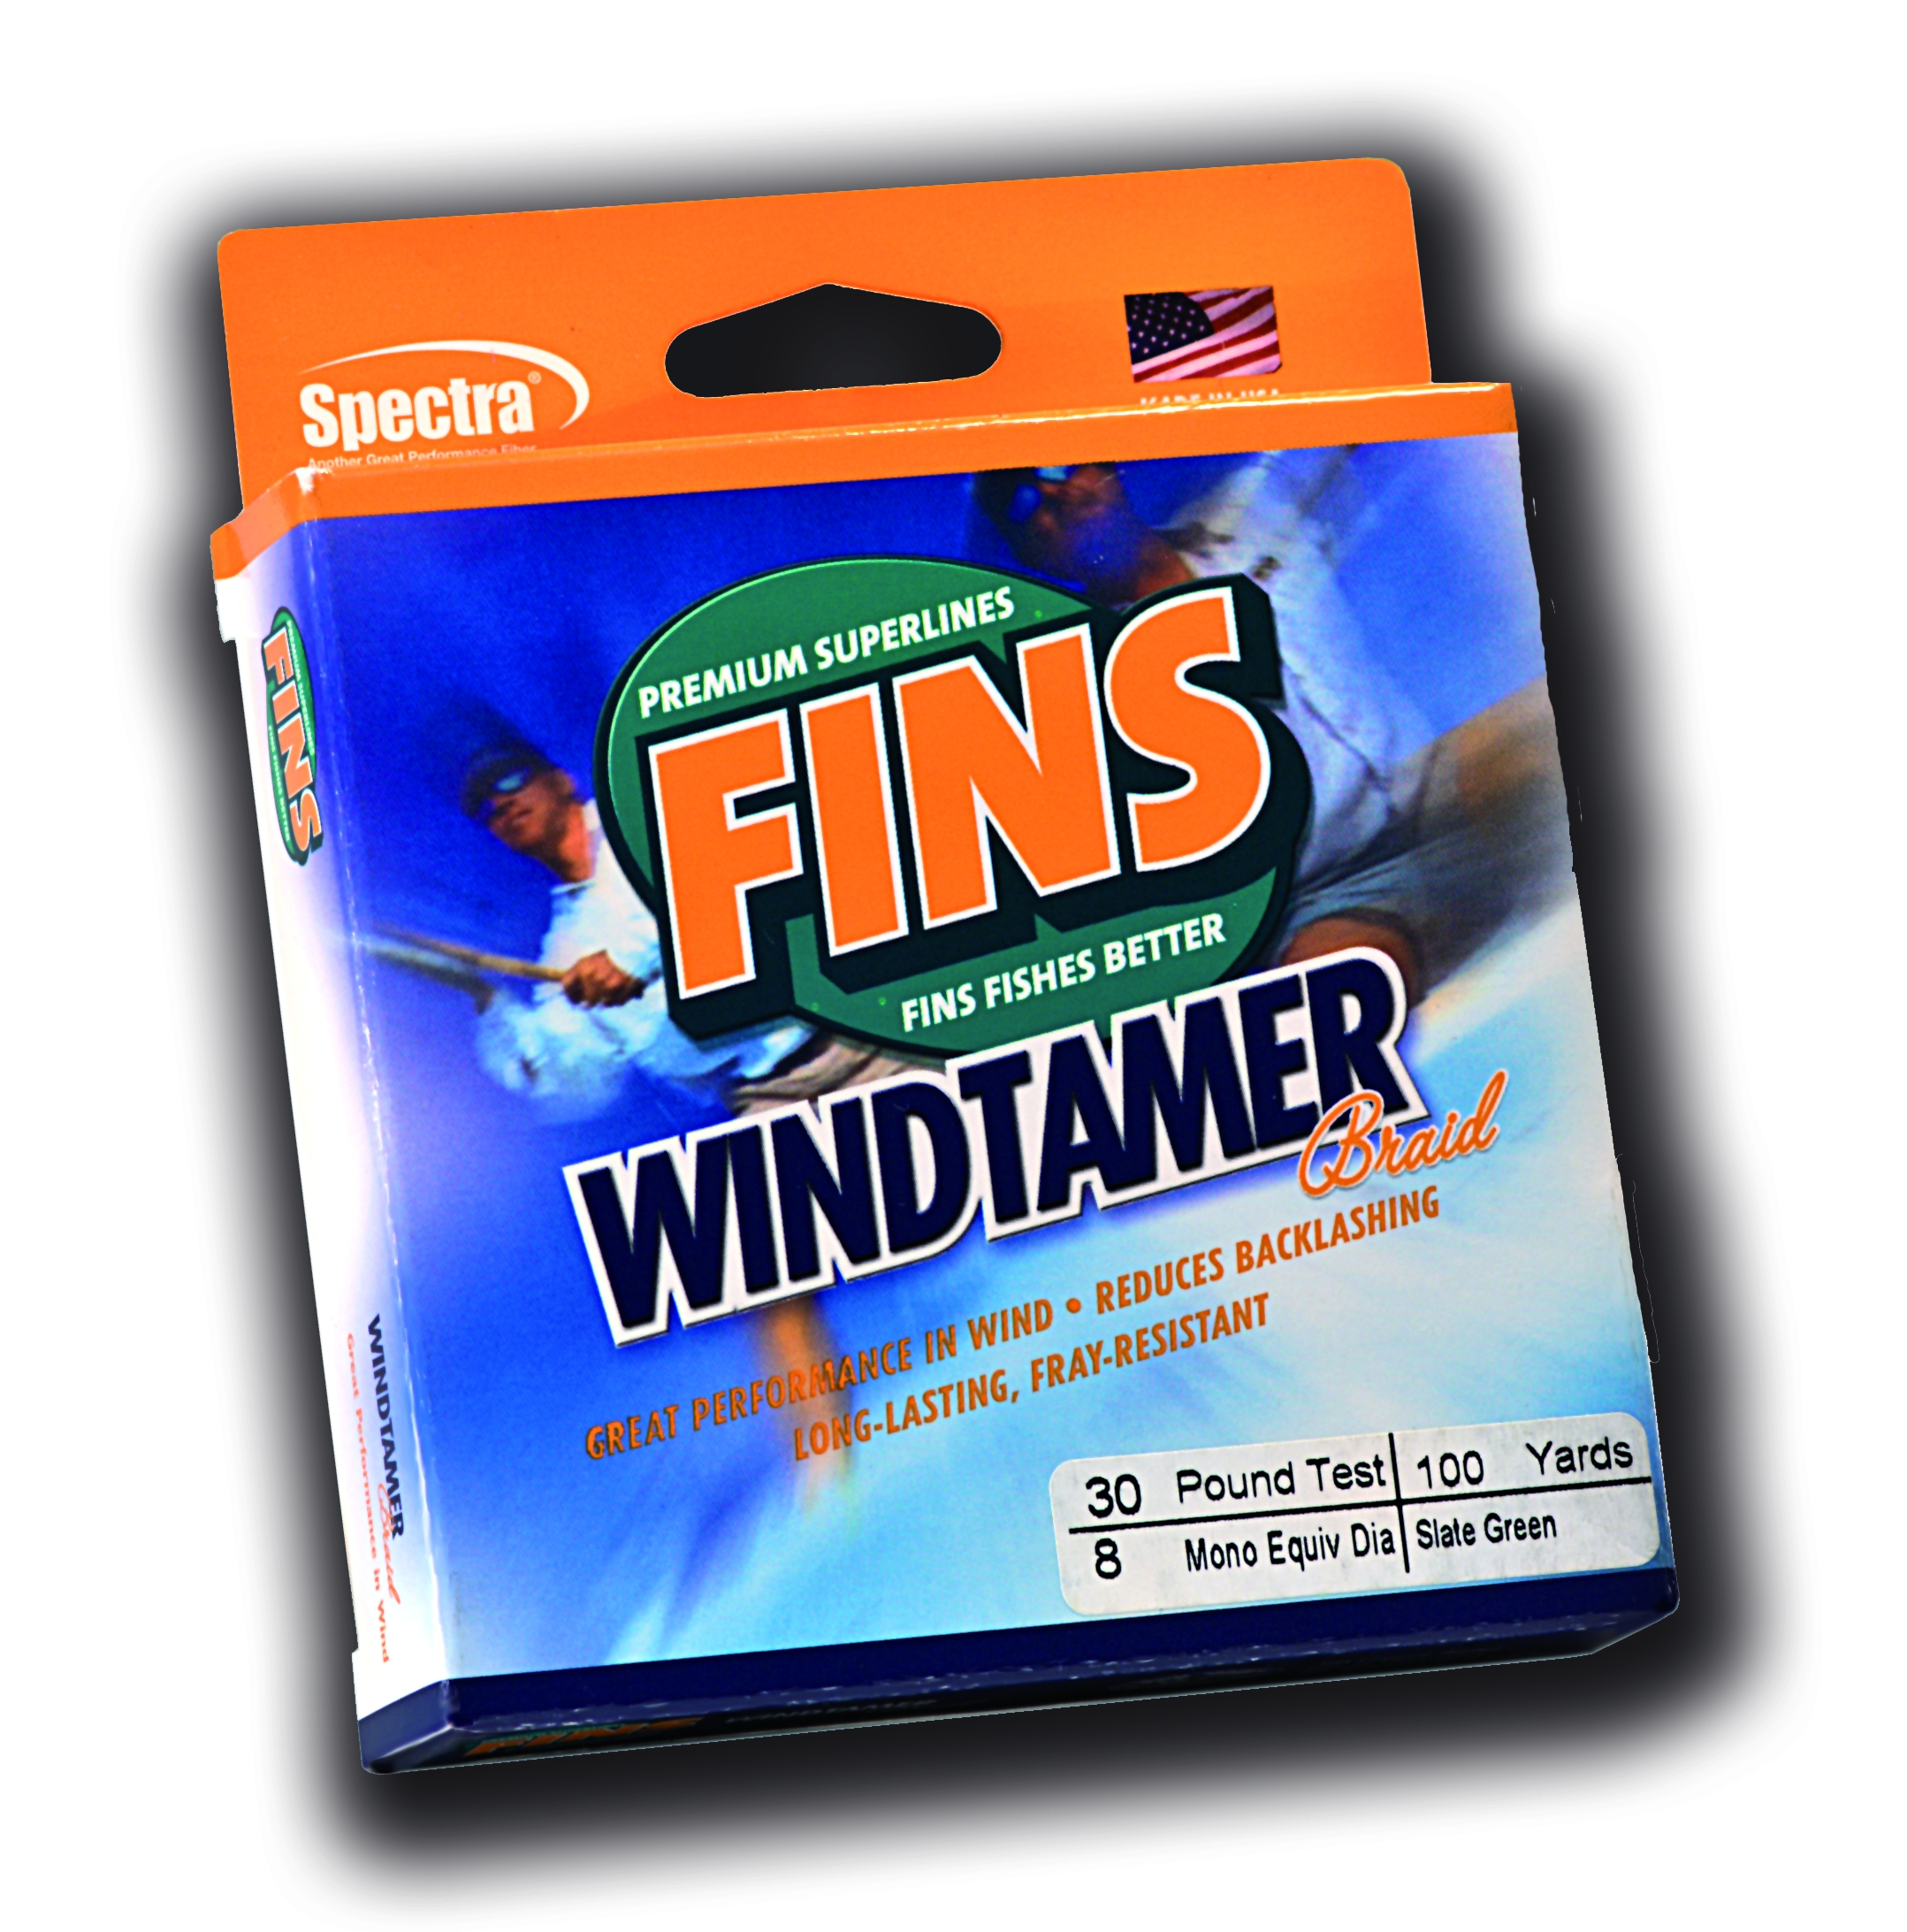 FINS WINDTAMER 150 YARDS